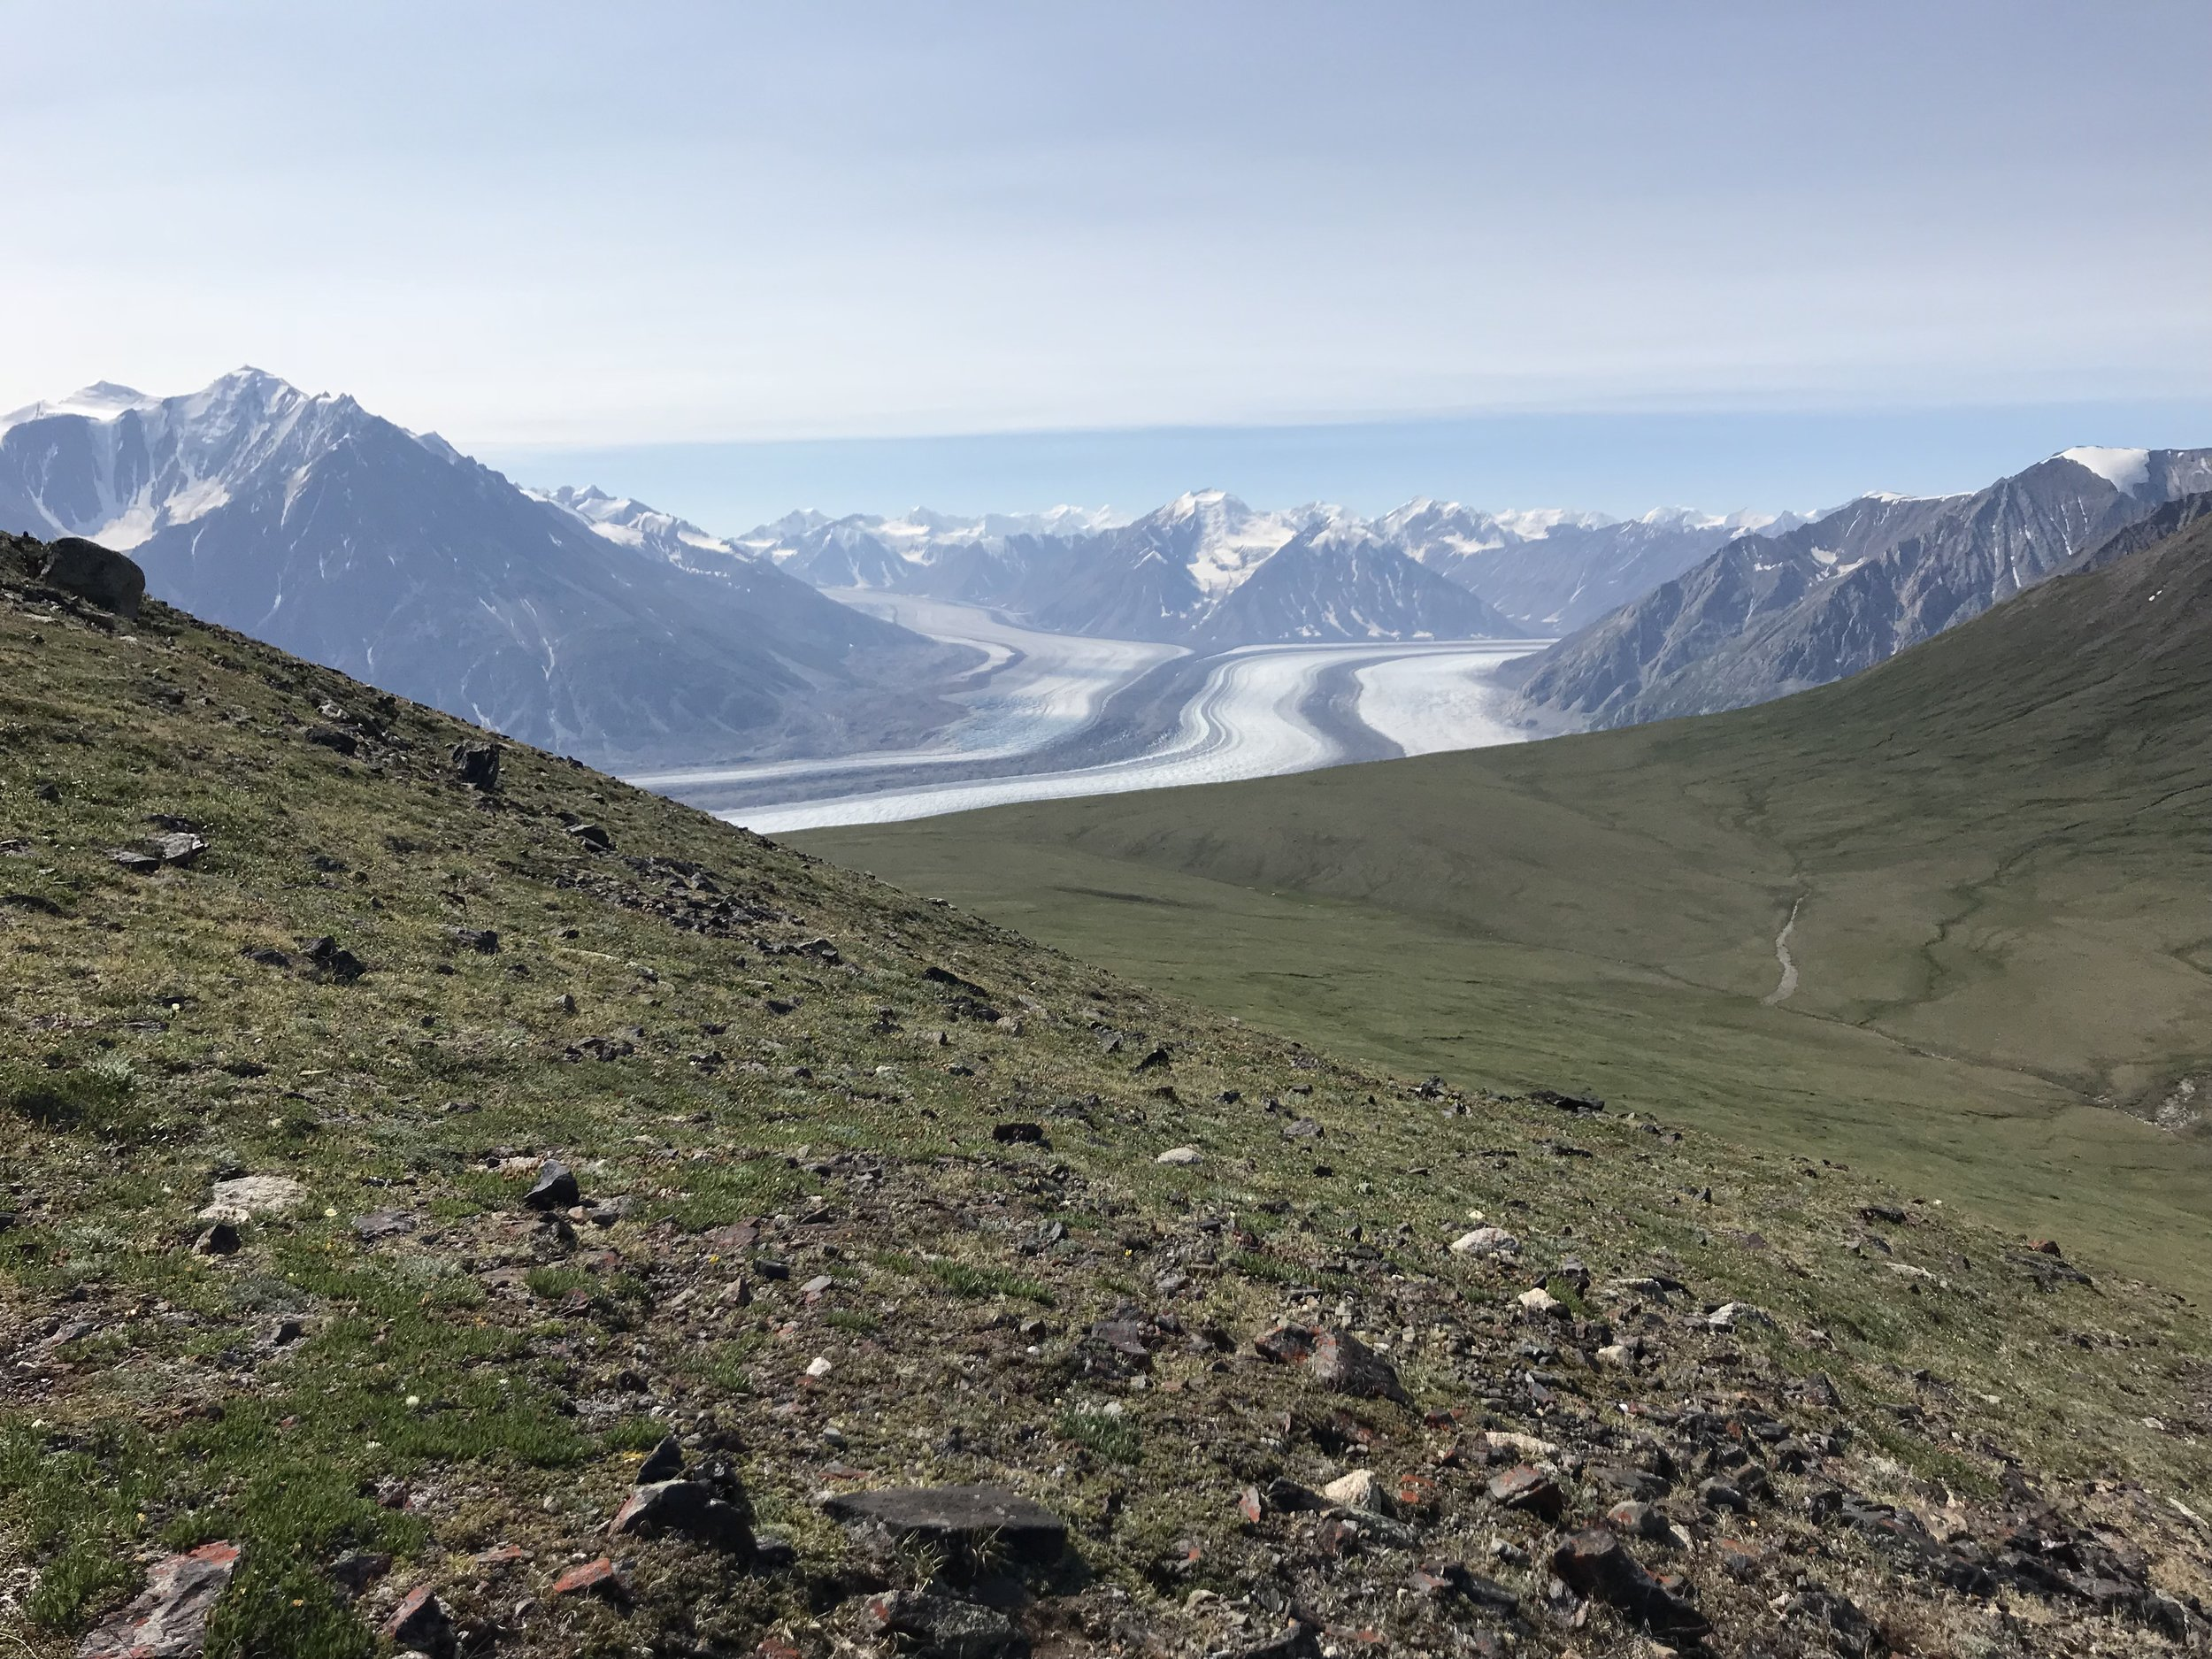 This photo shows the plateau that you can walk to instead for views of the glacier. Once you reach the saddle, you will get encouraging glimpses of the glacier to your right.